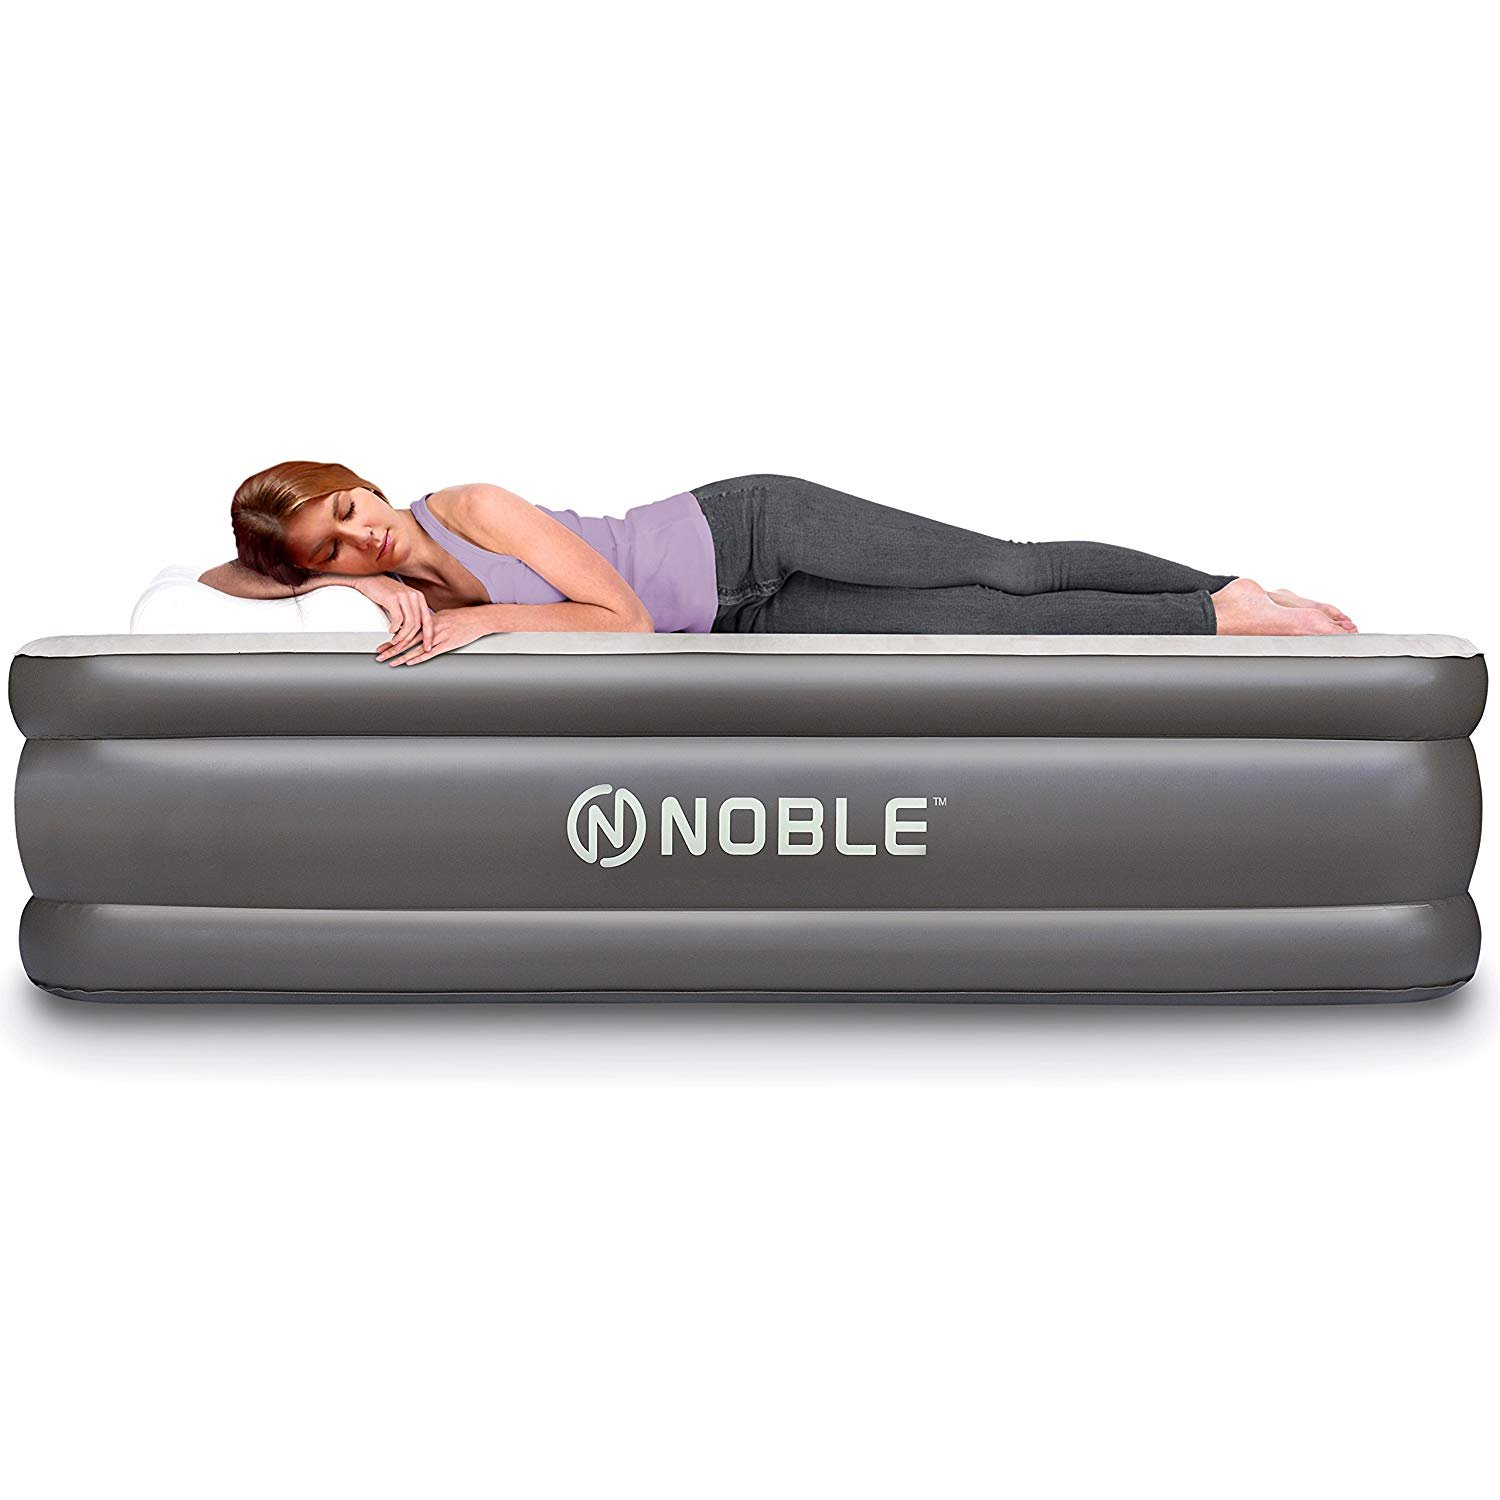 Noble Twin XL Size Comfort Double HIGH Raised Air Mattress - Top Inflatable Airbed with Built-in Pump - Elevated Raised Air Mattress Quilt Top & 1-Year Guarantee